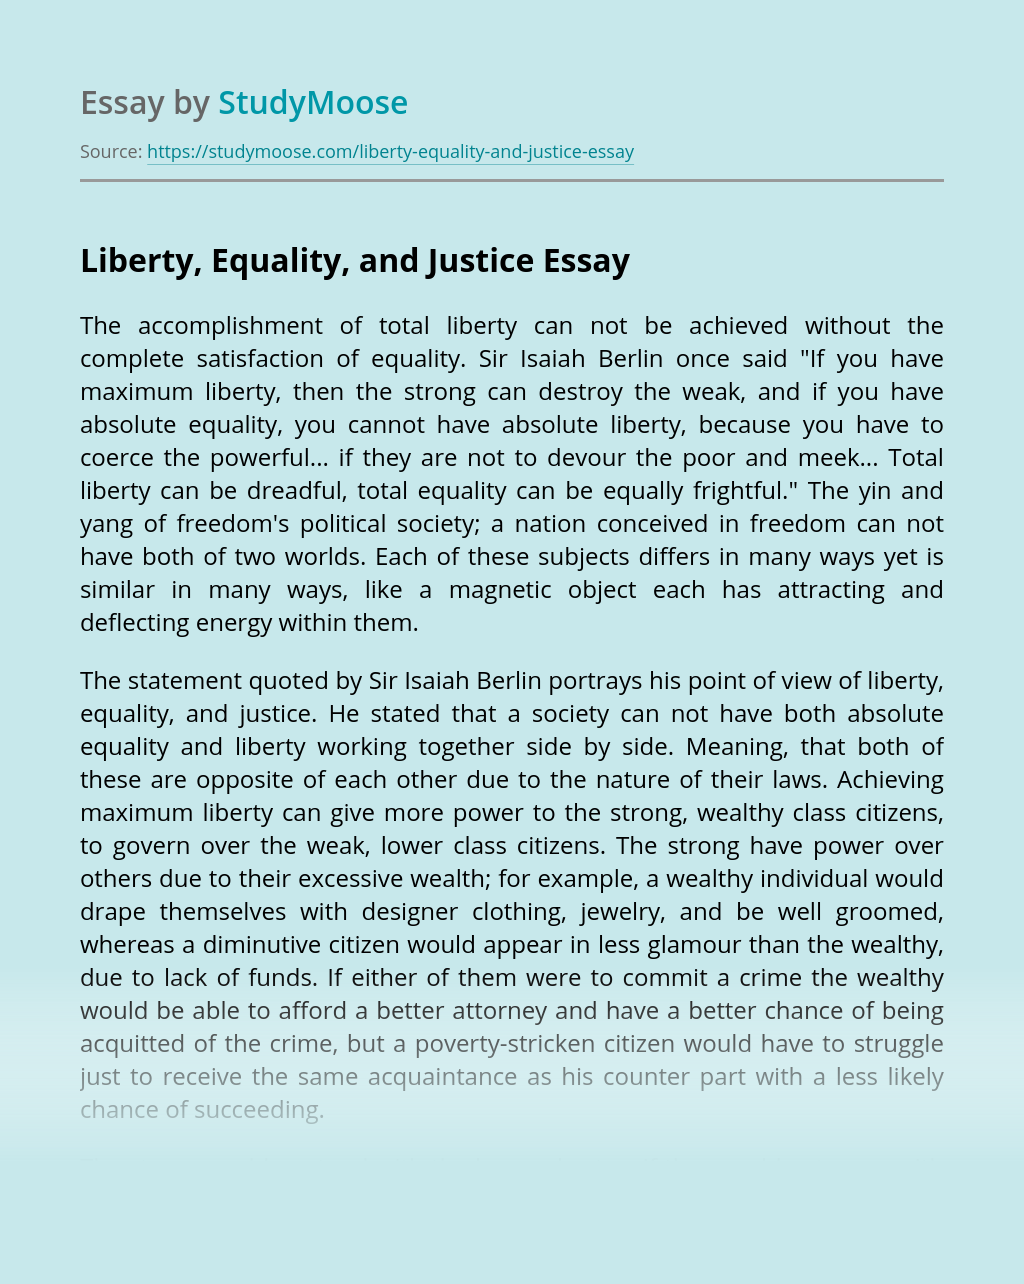 Liberty, Equality, and Justice